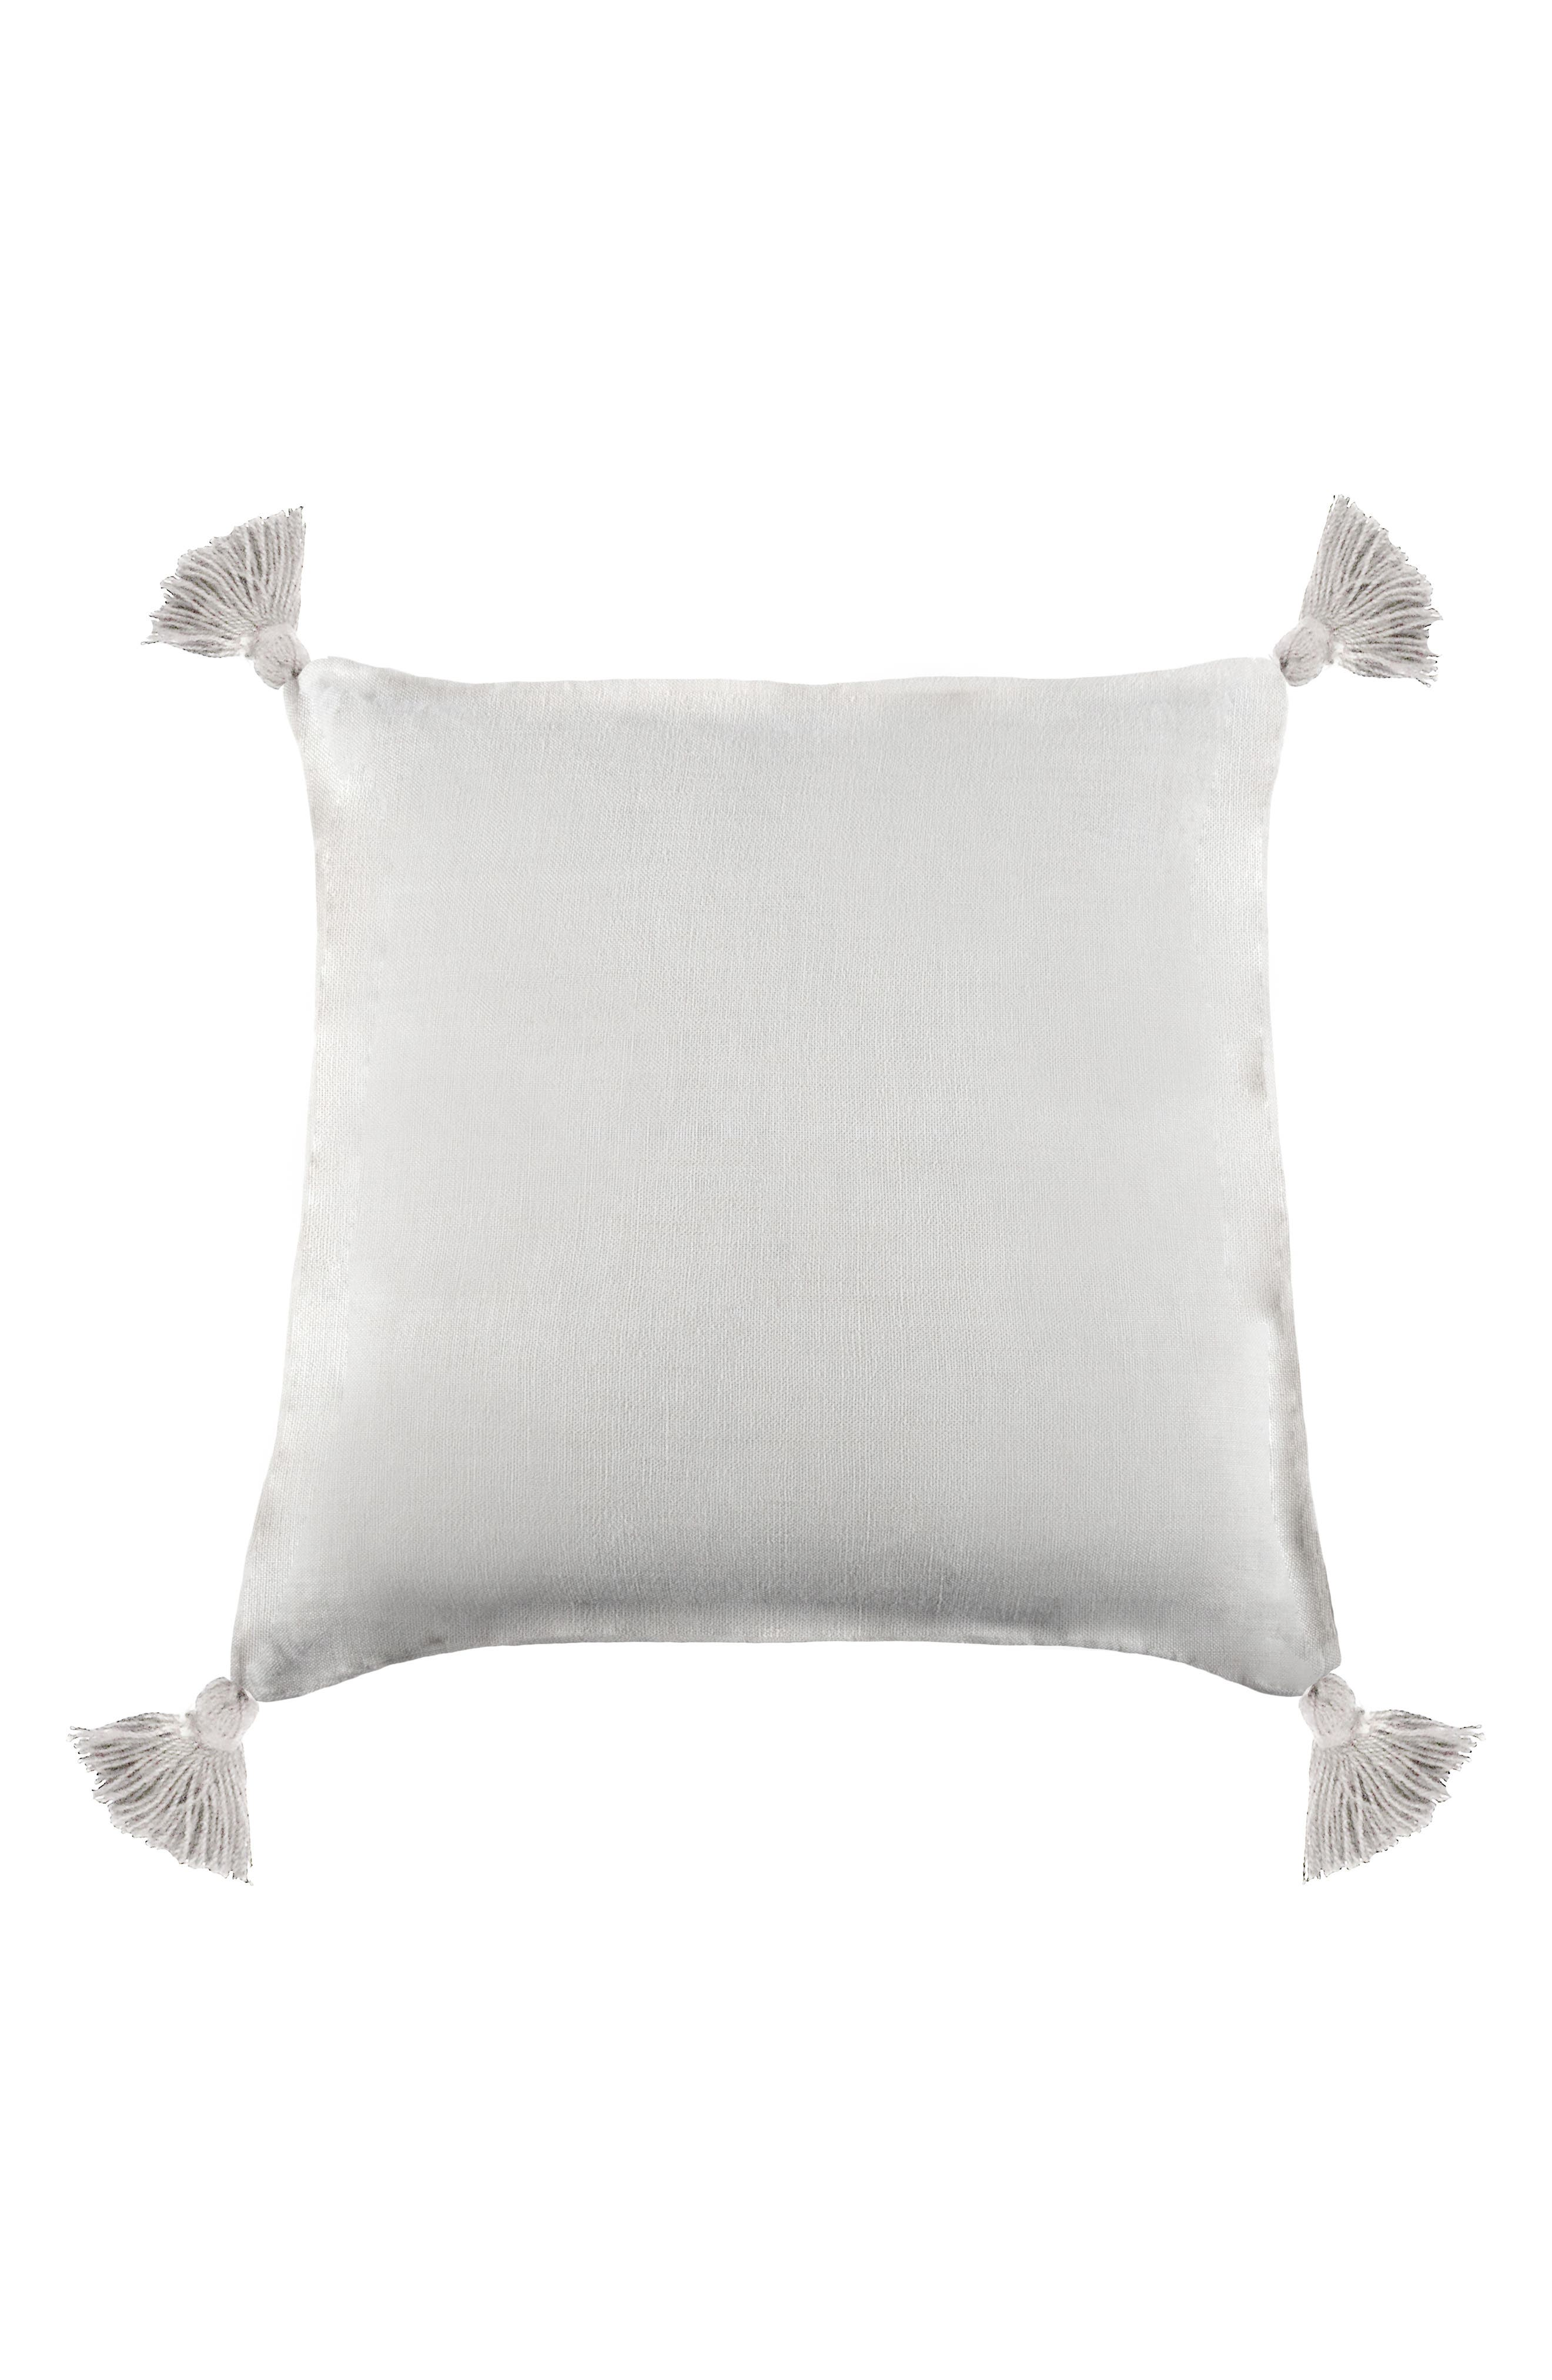 POM POM AT HOME,                             Montauk Tassel Accent Pillow,                             Main thumbnail 1, color,                             WHITE